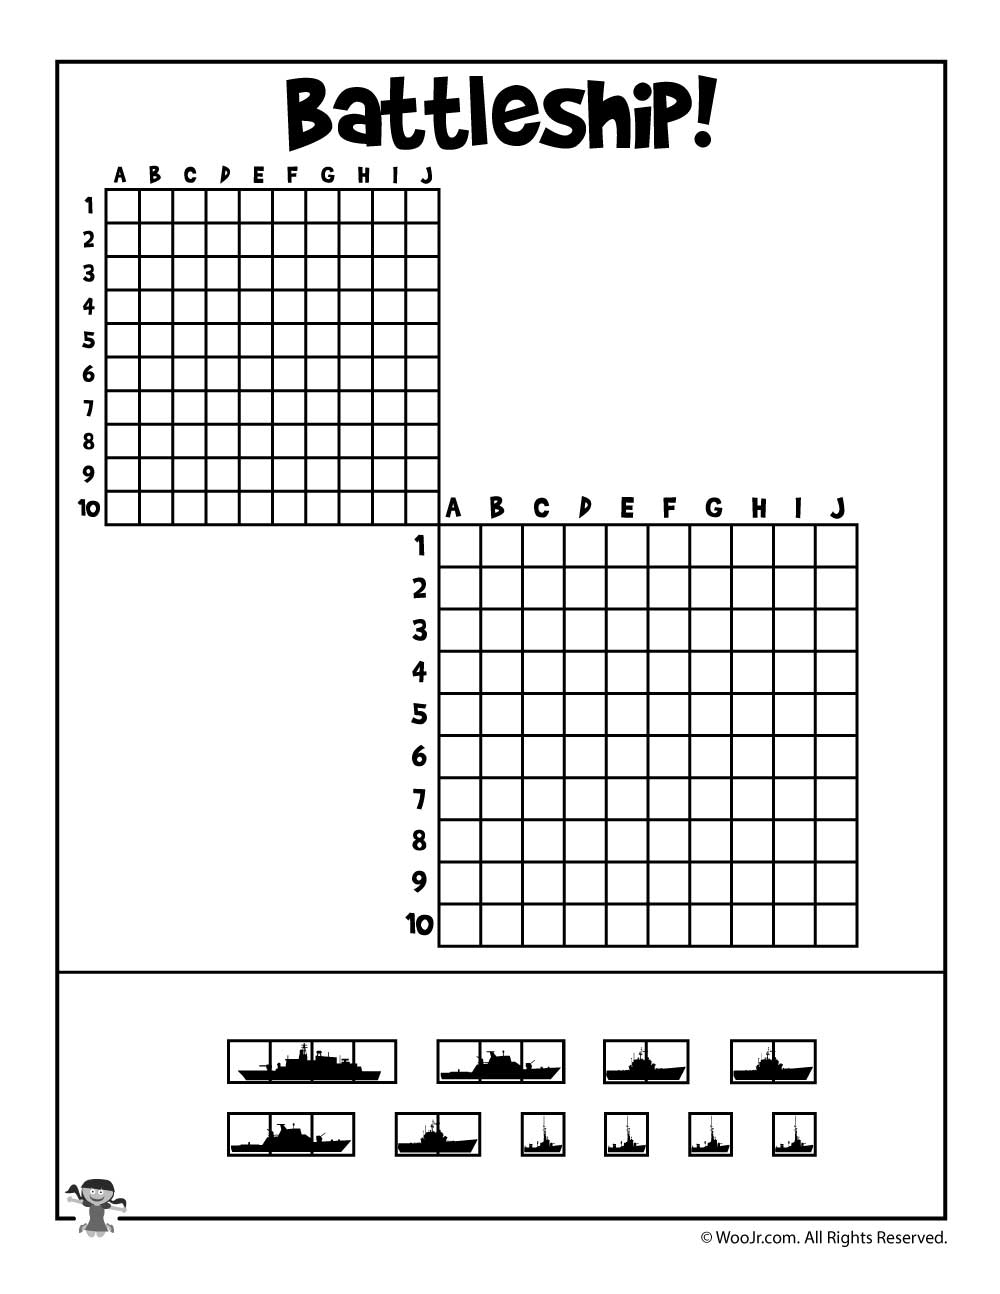 Printable Battleship Game | Woo! Jr. Kids Activities - Printable Battleship Puzzles